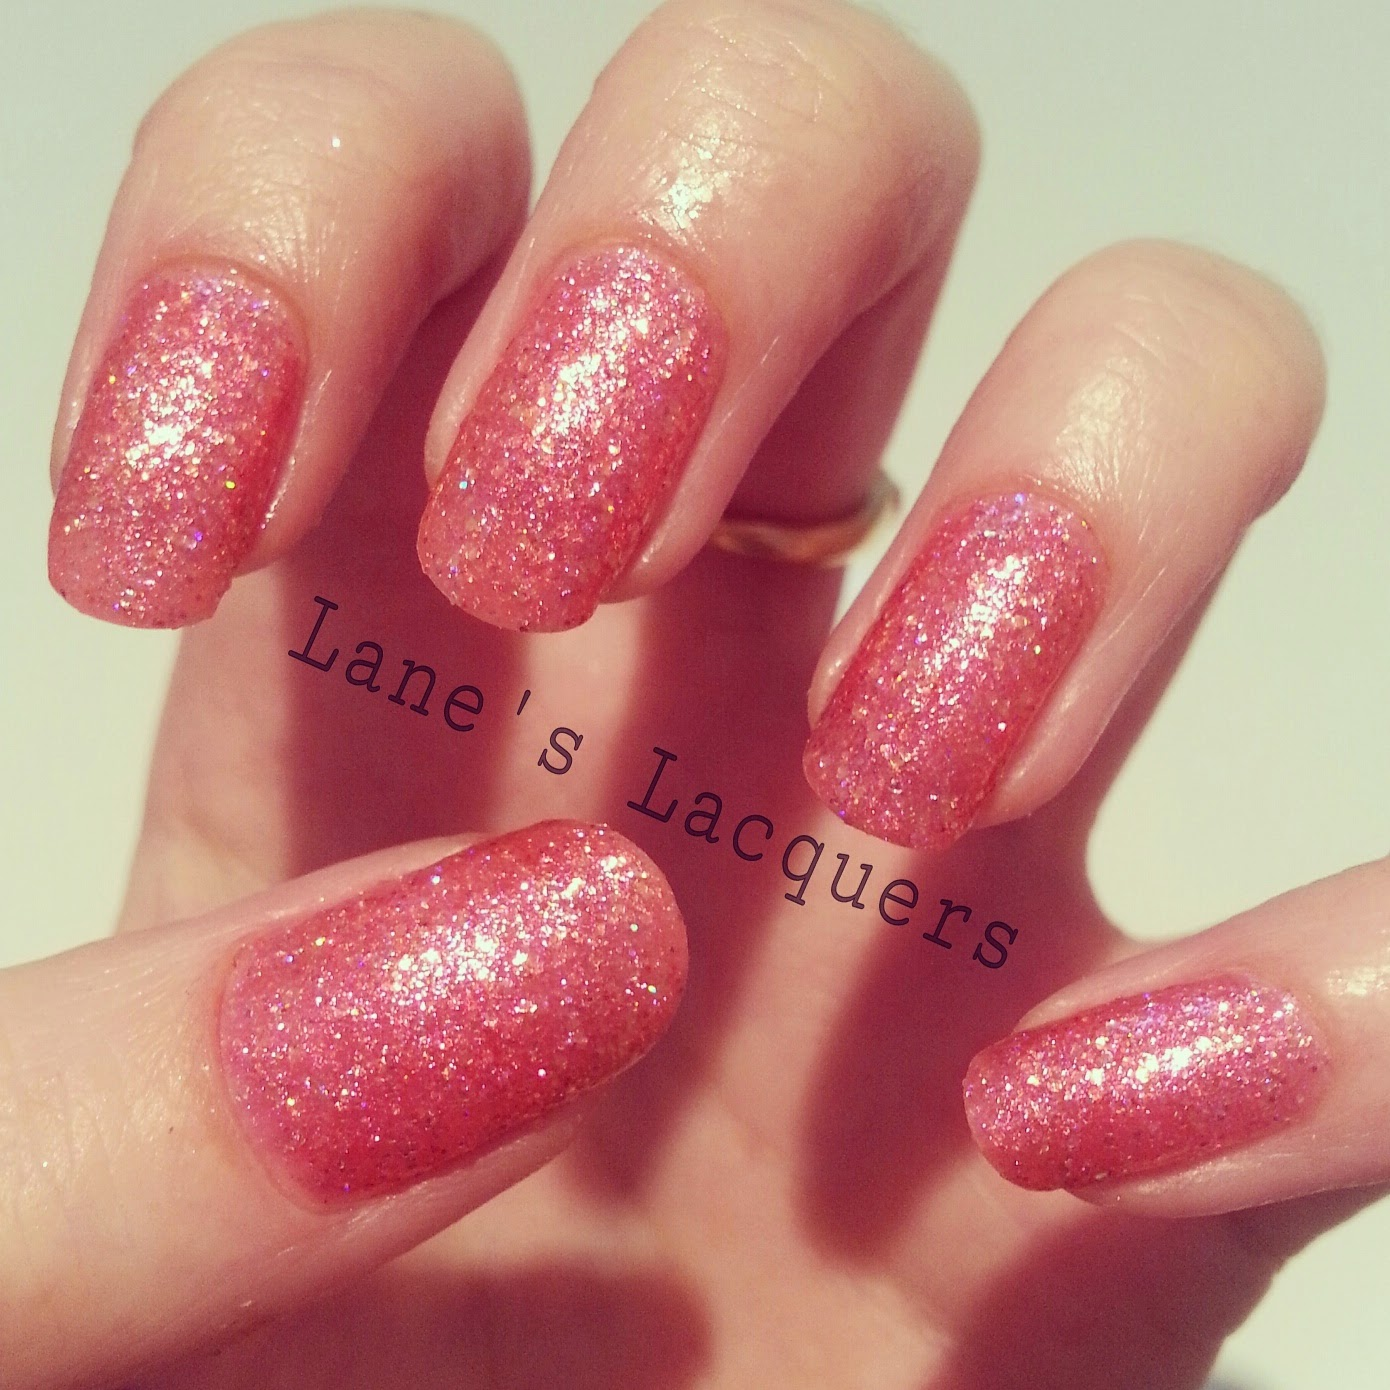 new-barry-m-glitterati-starlet-swatch-manicure